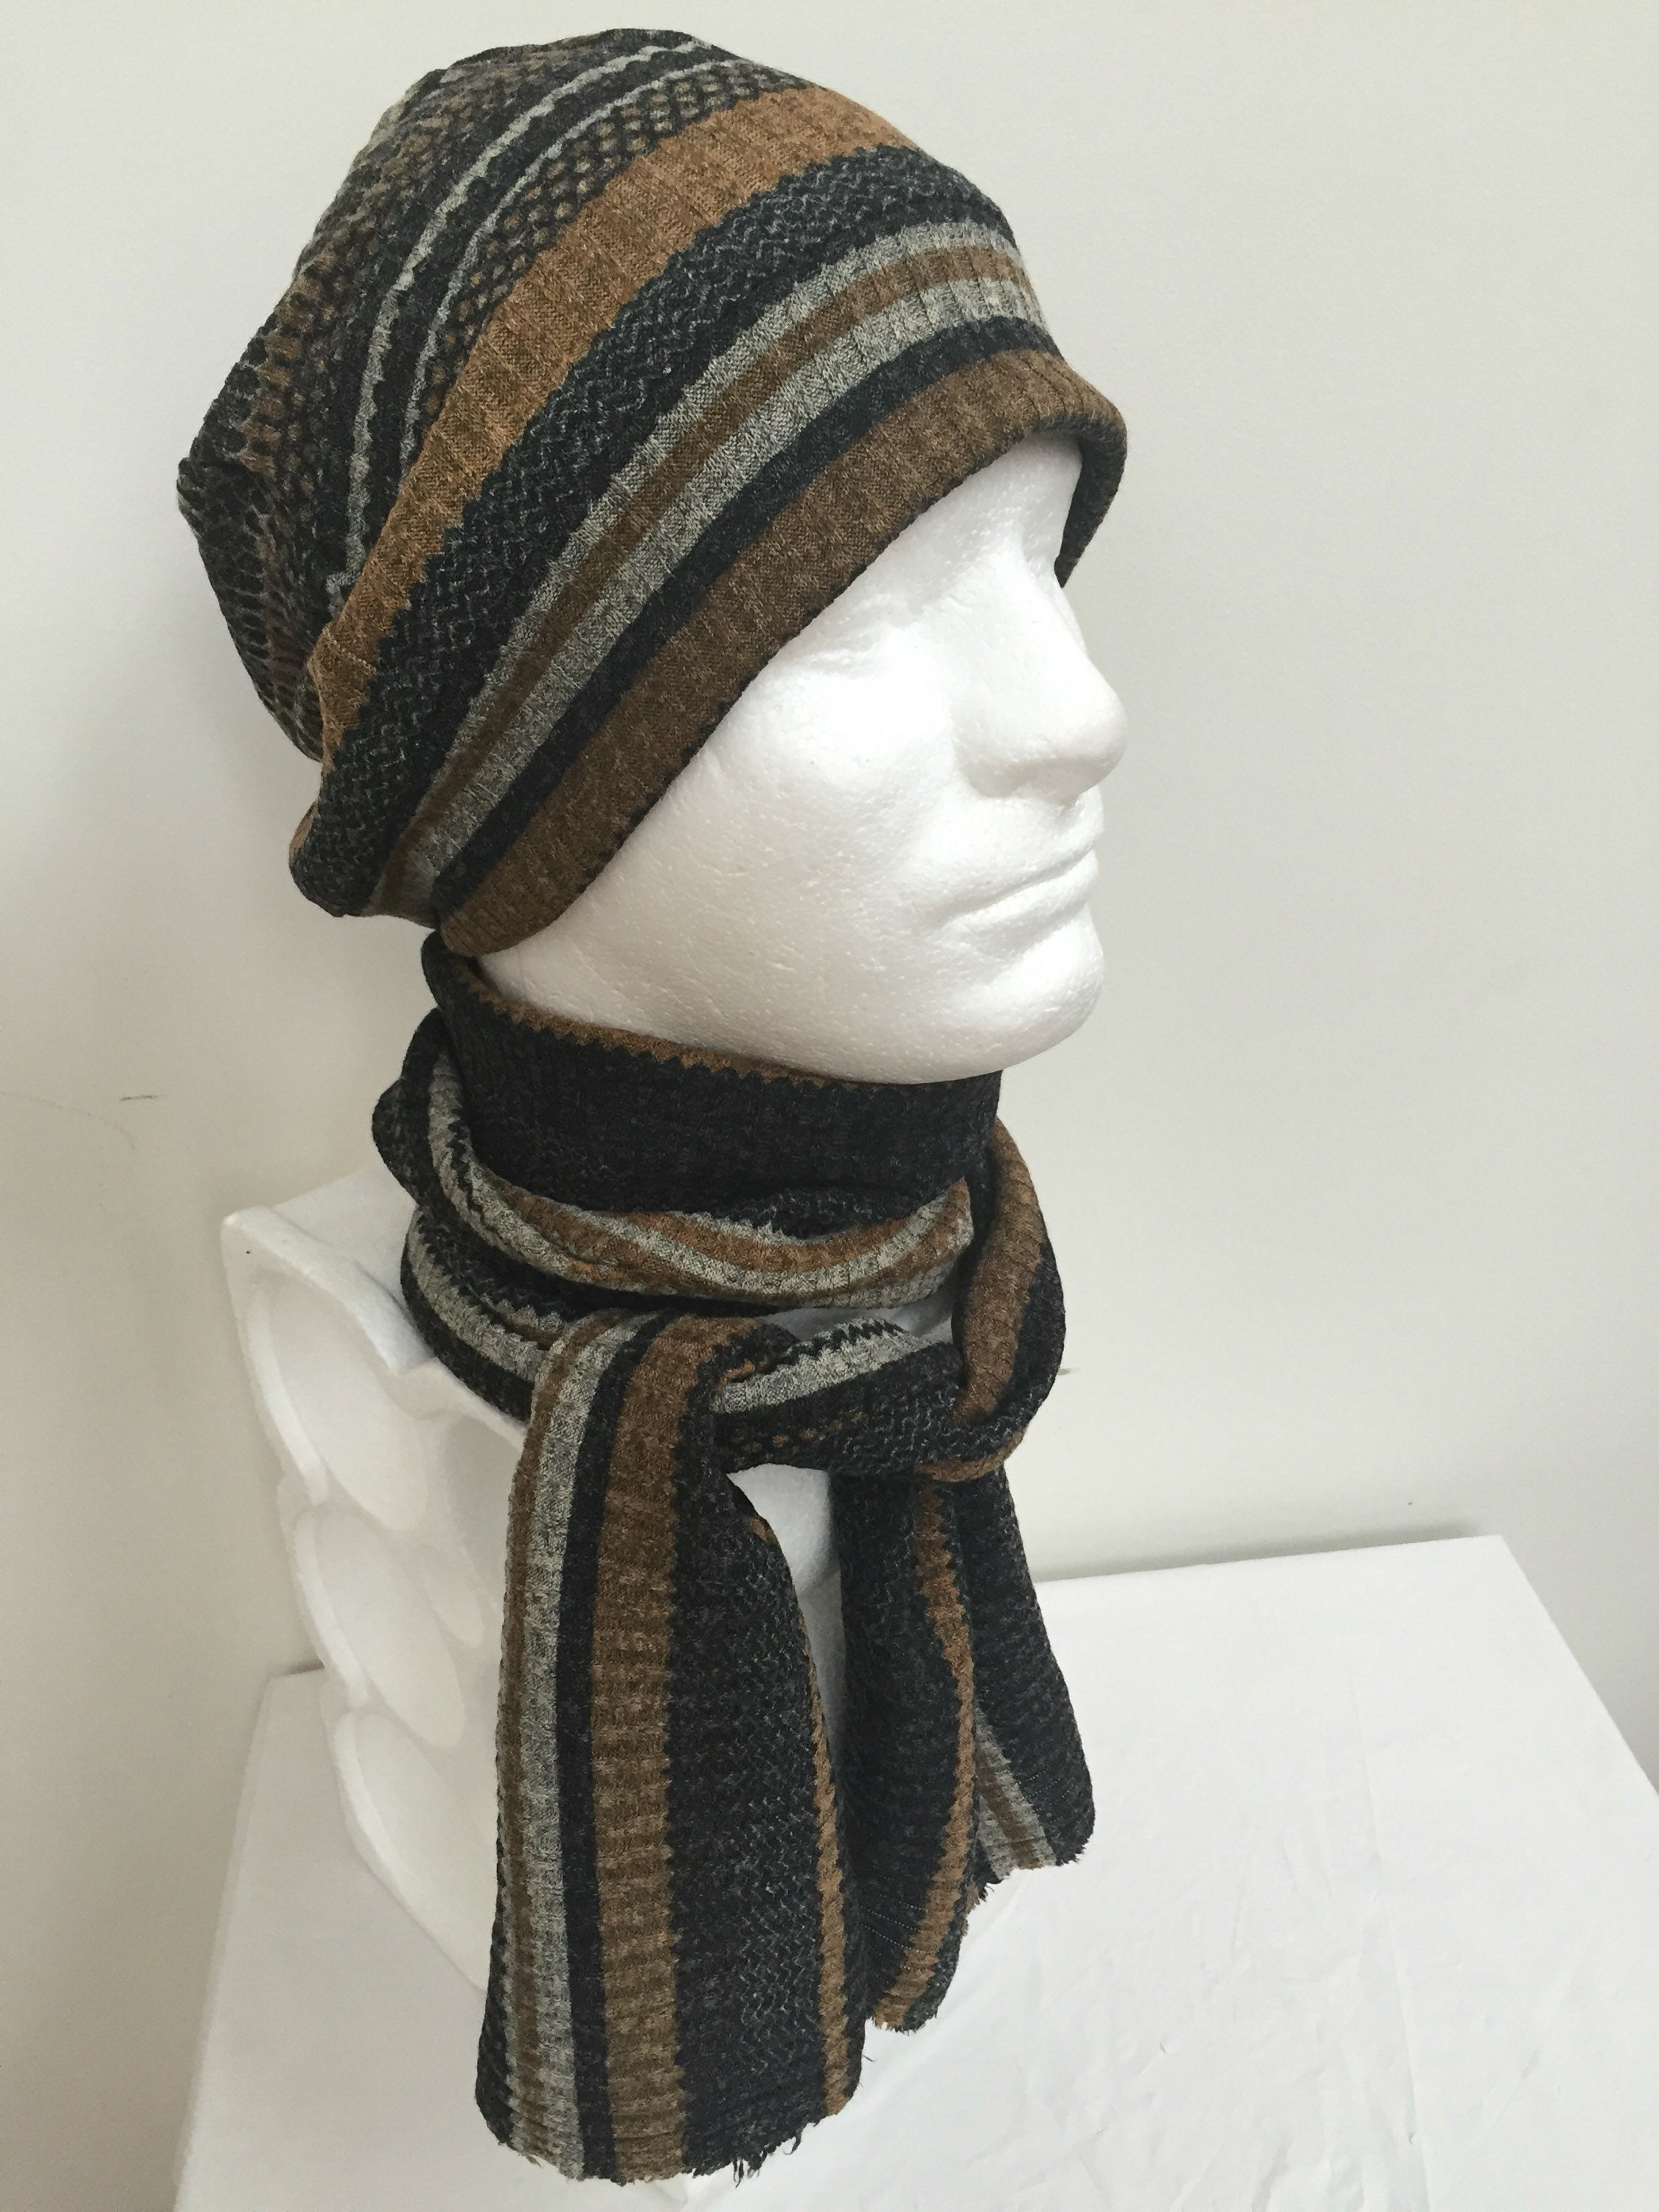 Gentleman s Acrylic Tan Slouchy Hat and Scarf Set. Men s Brown Knit Beanie  Hat and Scarf. Grey Stripe Fall Winter Hat and Scarf Gifts cb173132951